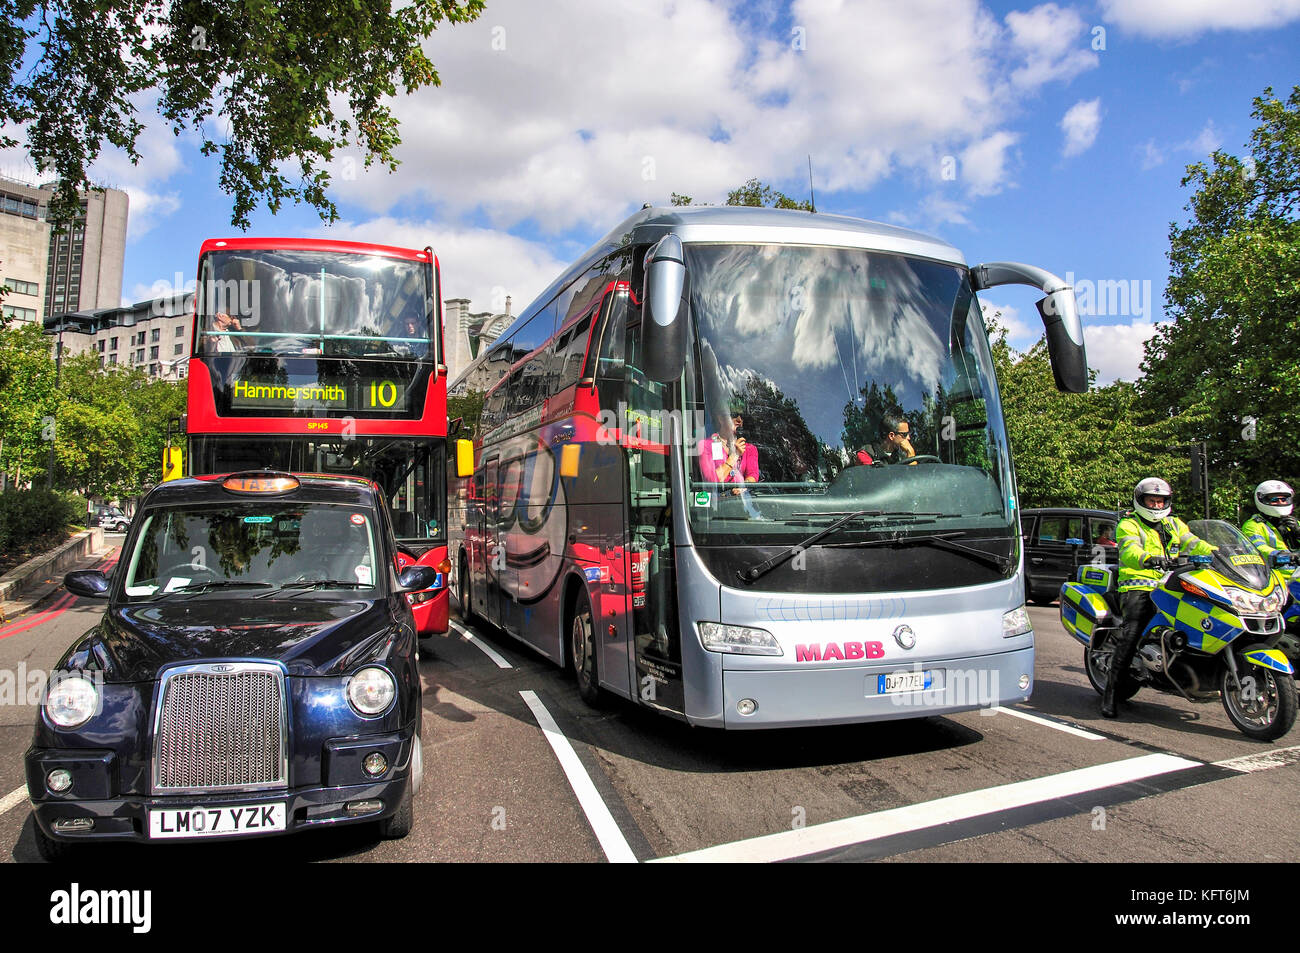 Traffic waiting at lights, Hyde Park Corner, City of Westminster, Greater London, England, United Kingdom - Stock Image